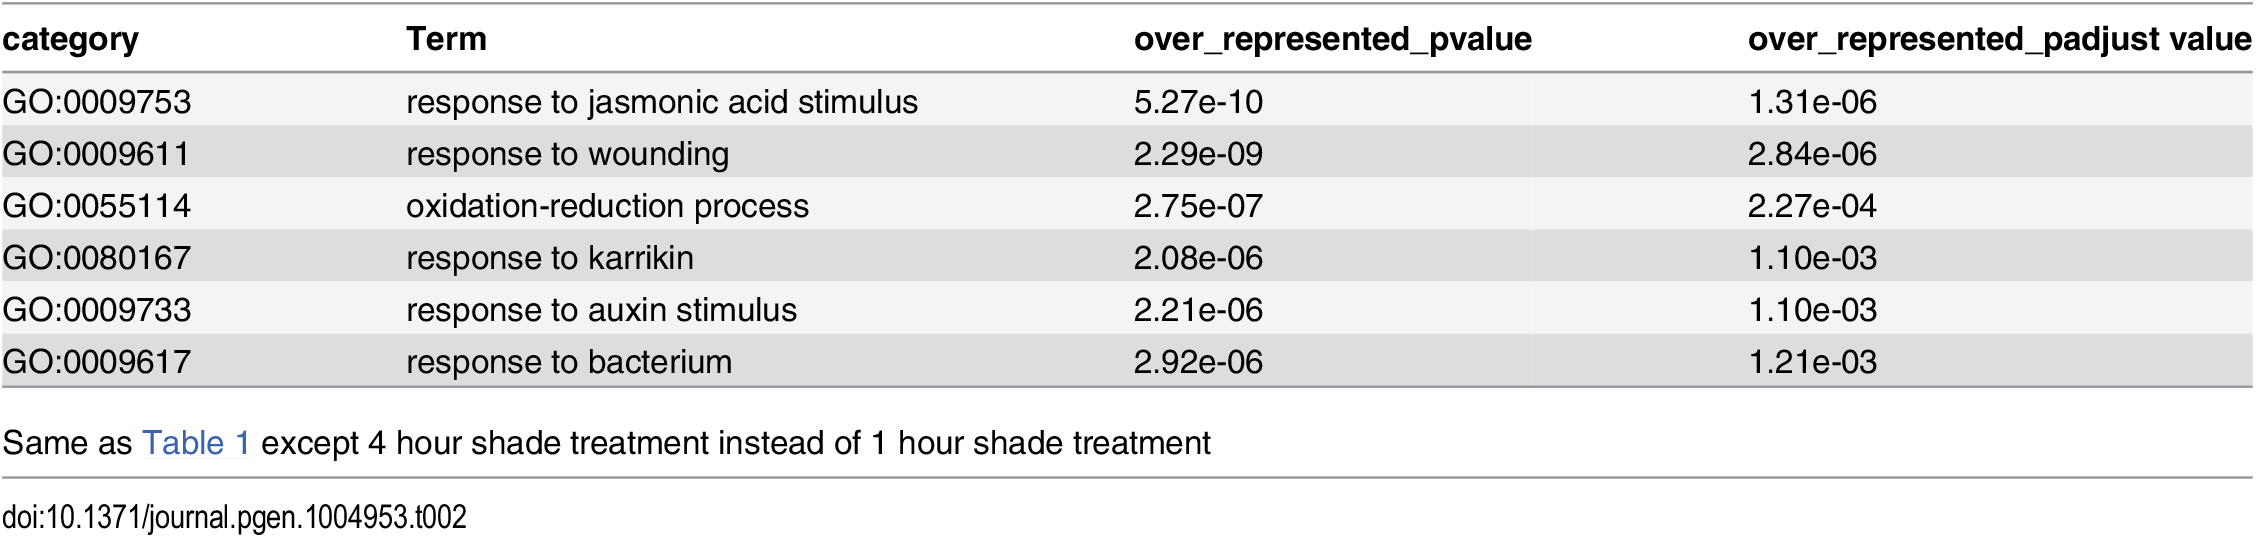 GO category analysis of 4 hour shade-responsive genes in leaf/apical region.